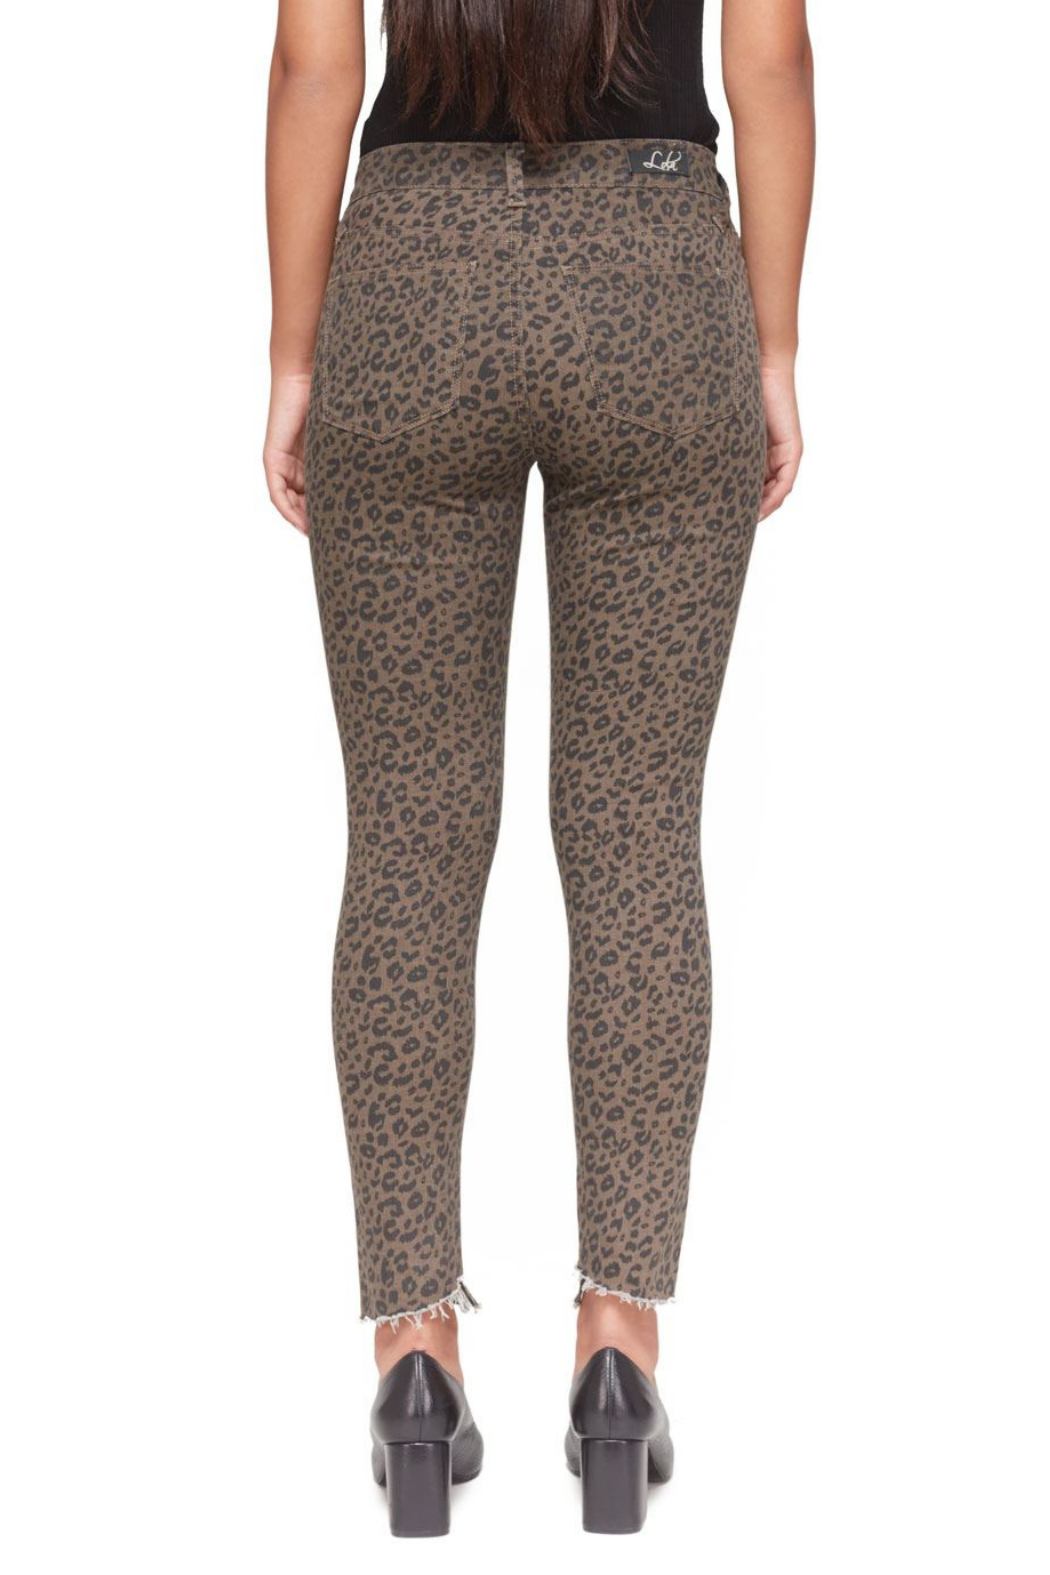 Lola Jeans Blair Leopard Mid-Rise Skinny Jean - Side Cropped Image